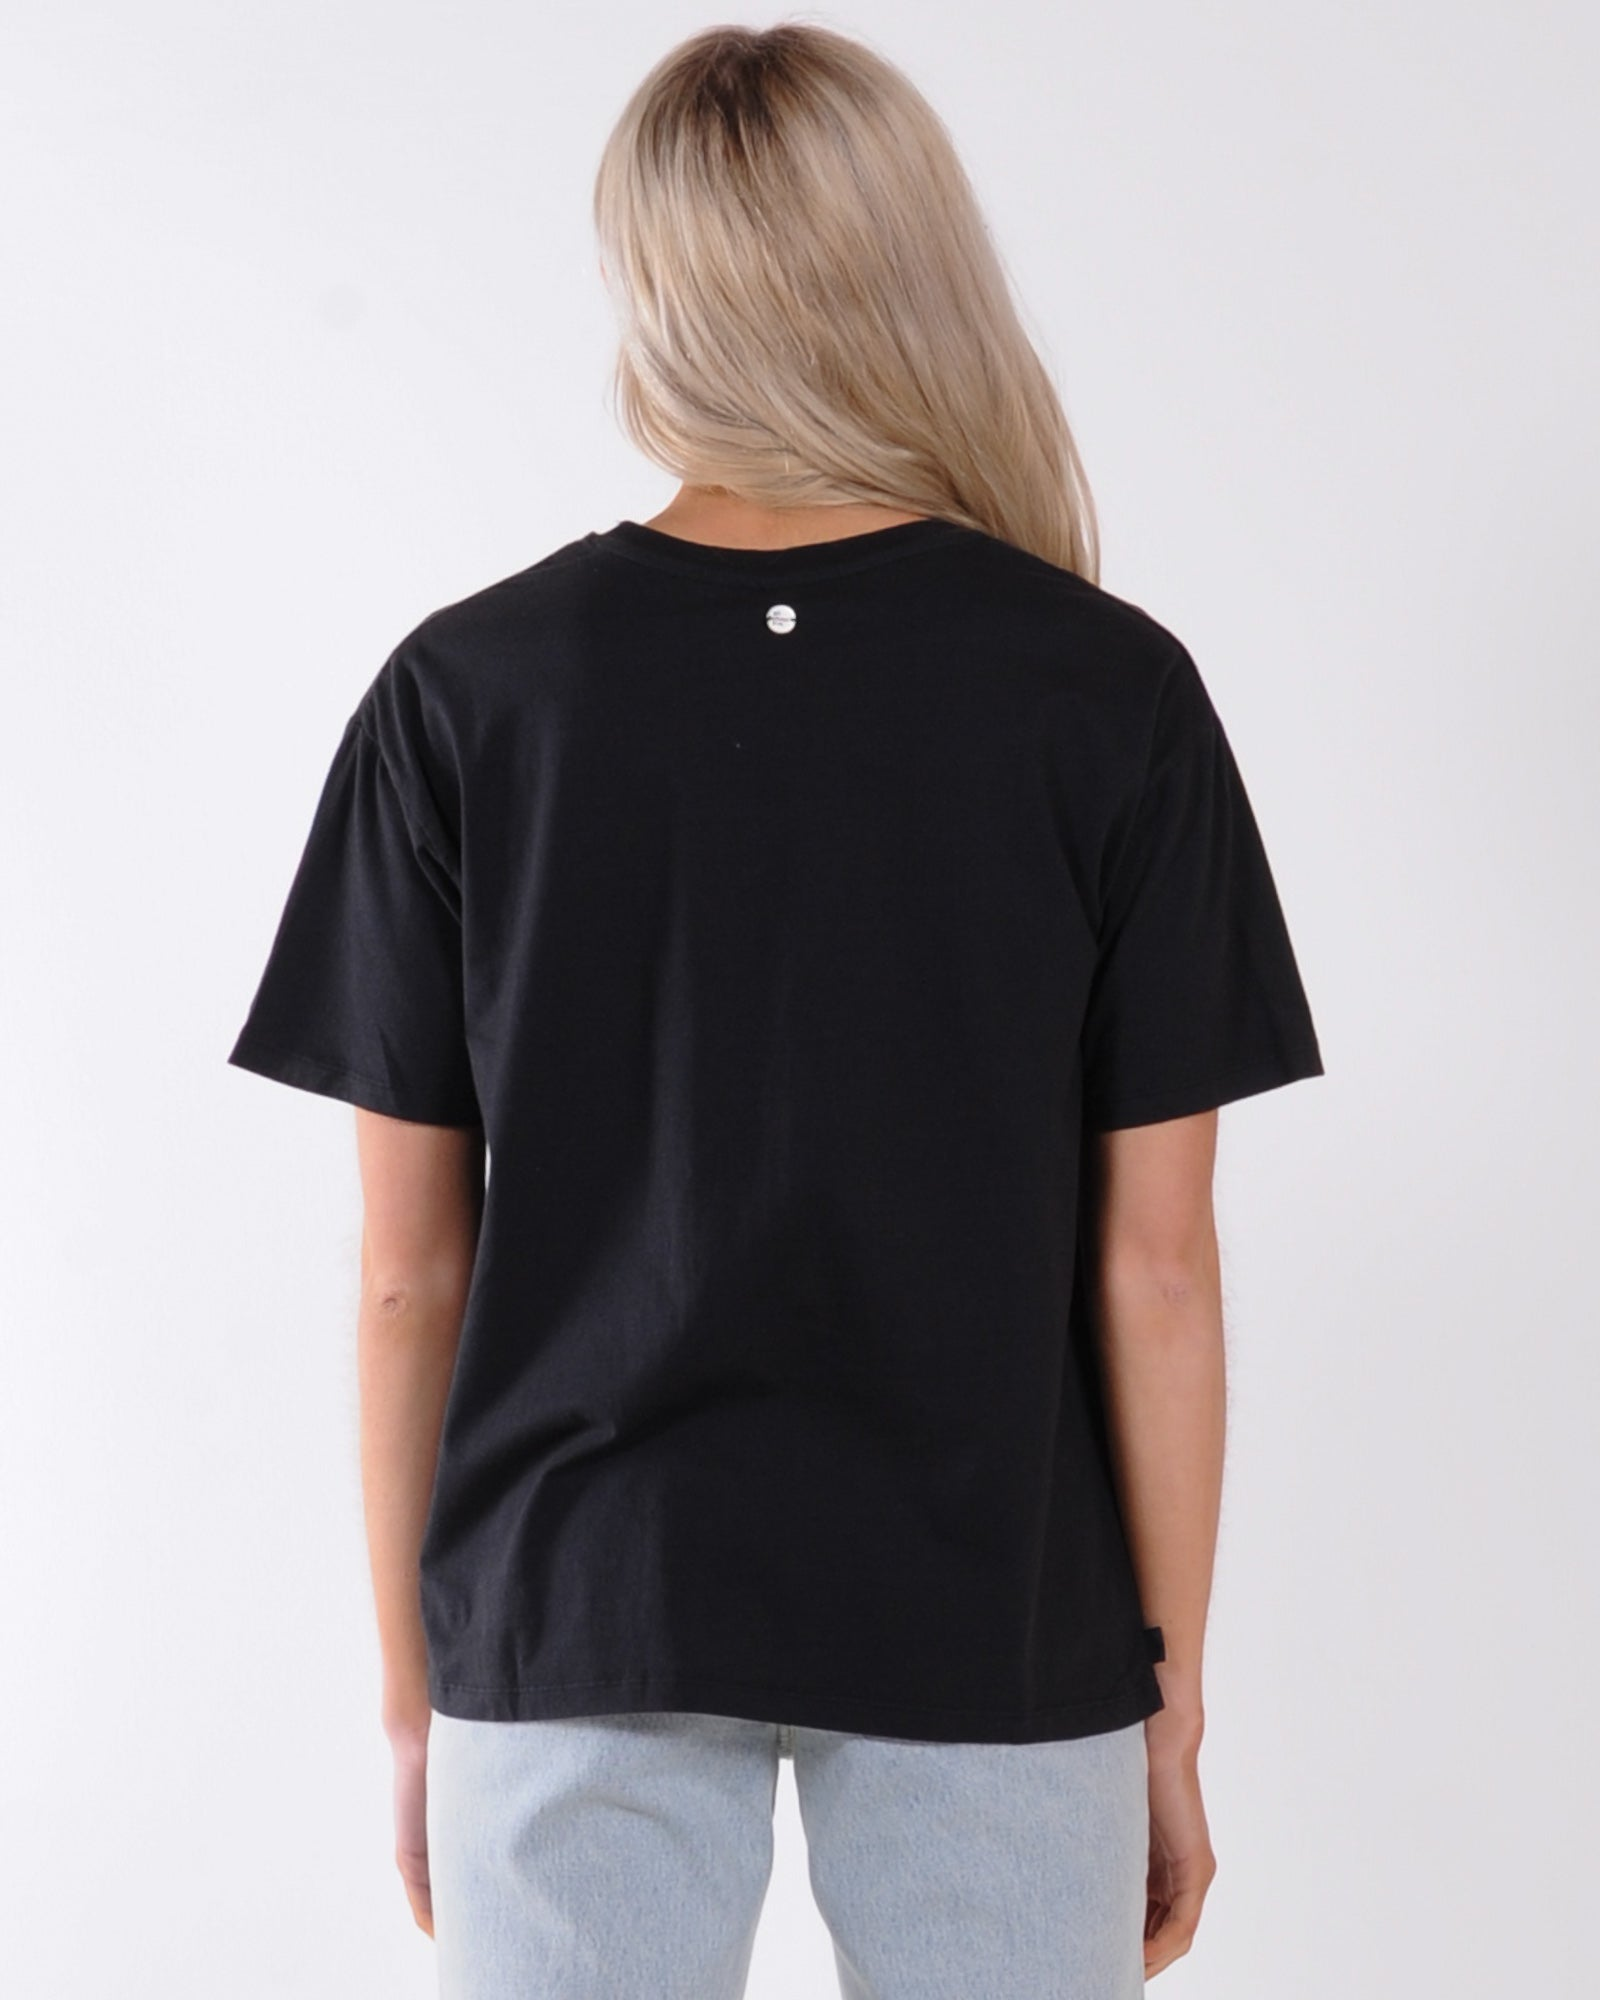 All About Eve Raise Hell Tee - Washed Black